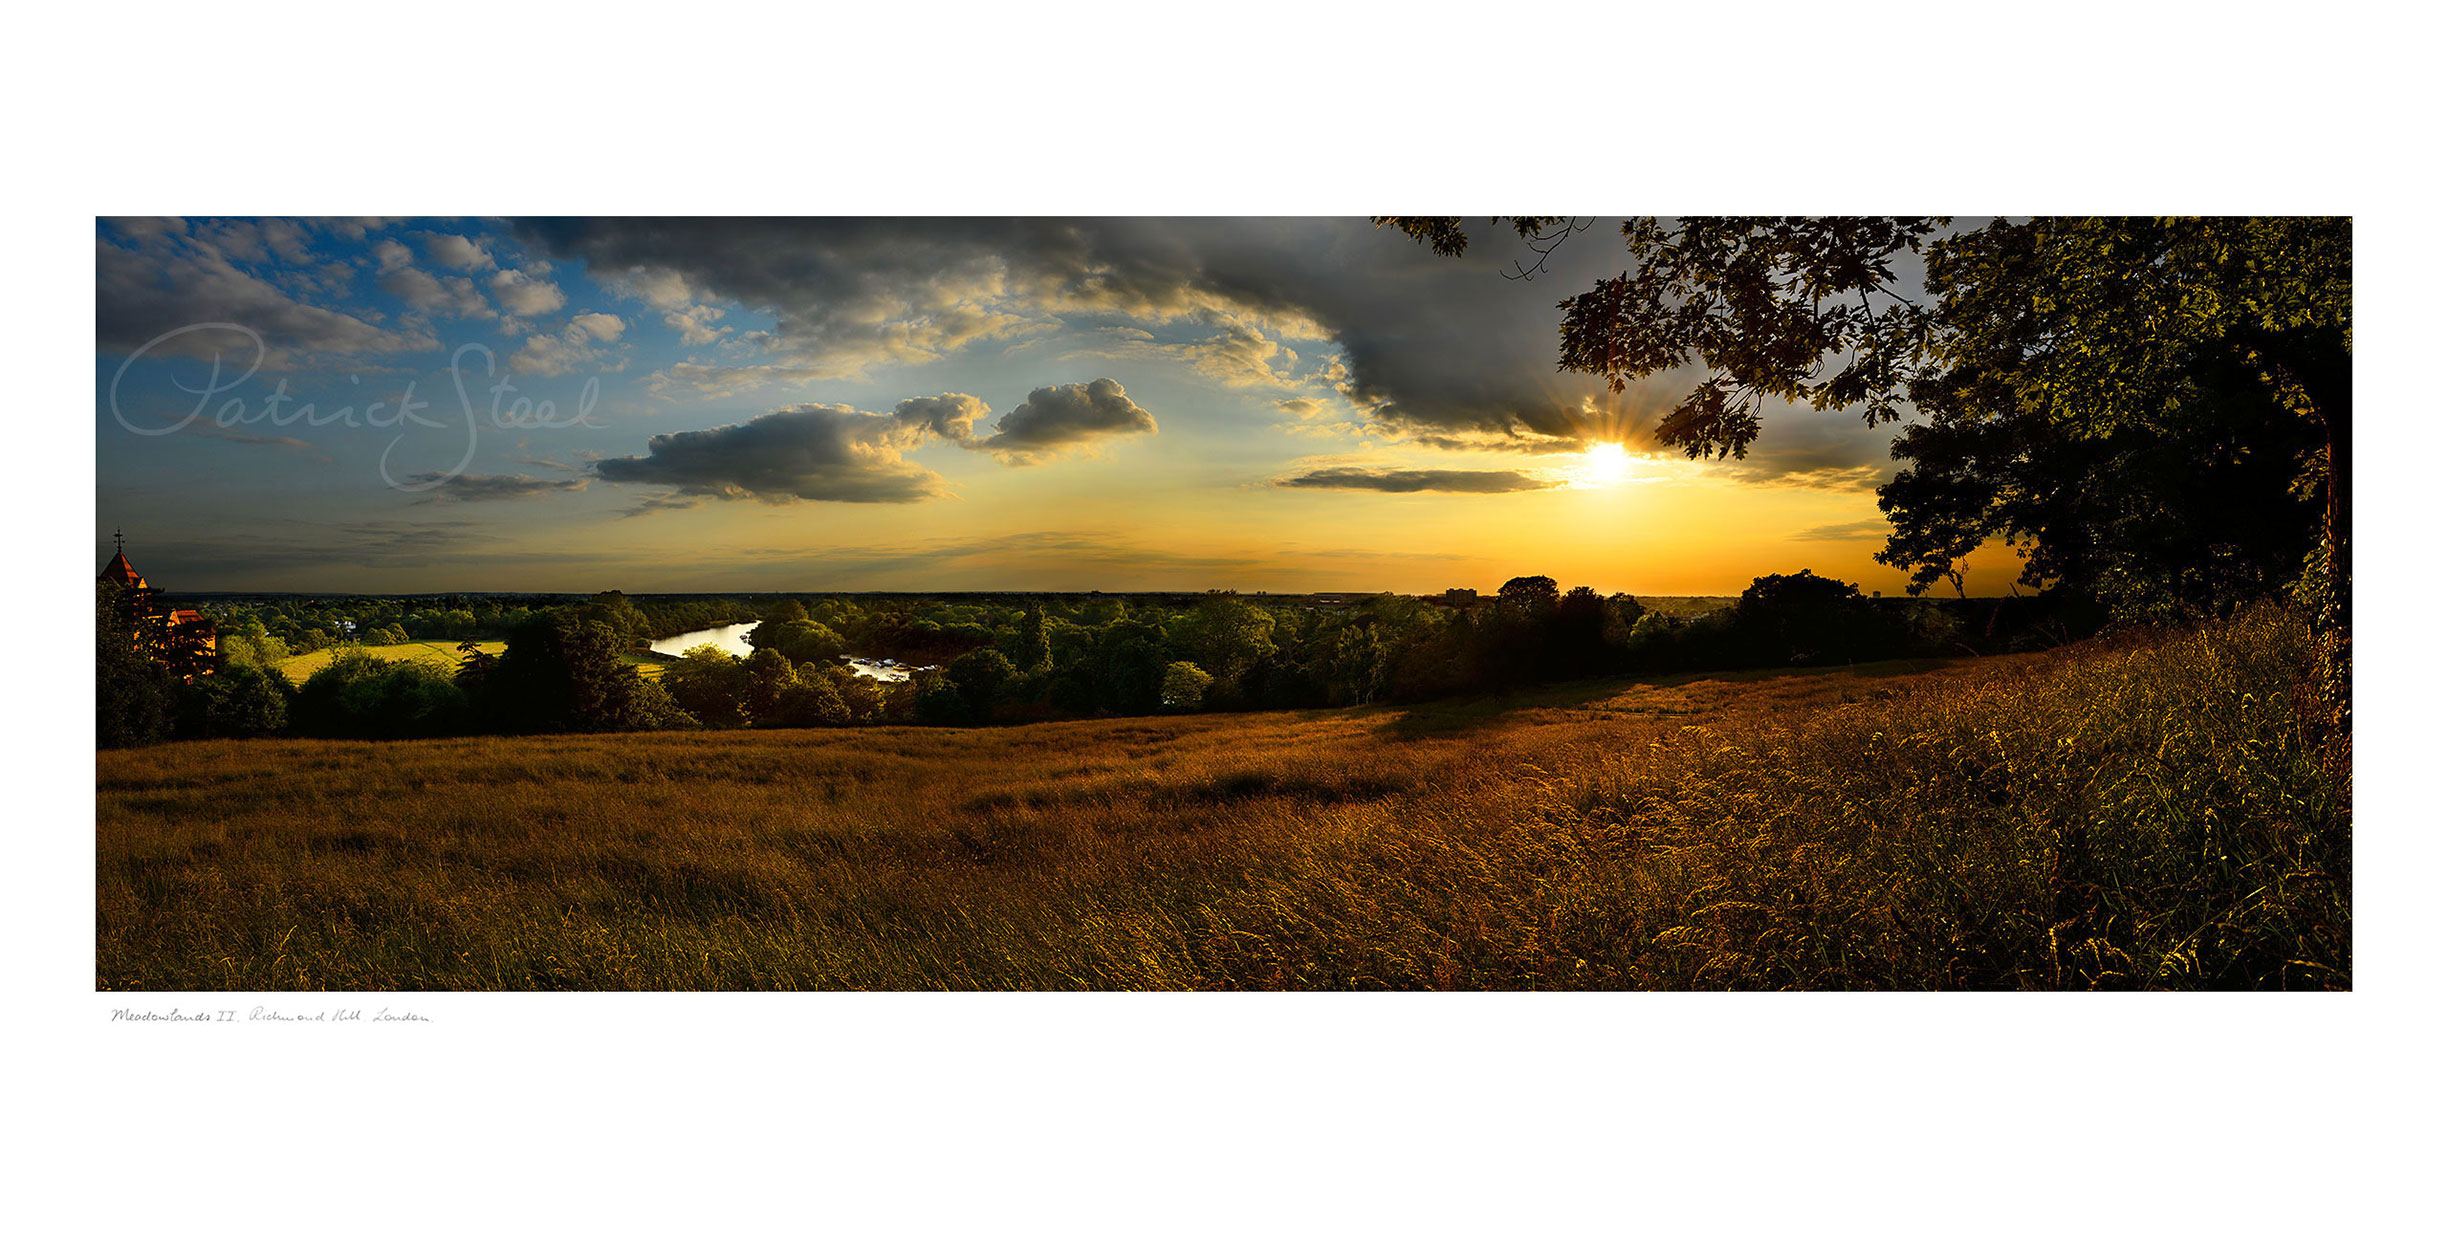 Panoramic Landscape Photograph 'Meadowlands II', the view from Richmond Hill by Patrick Steel